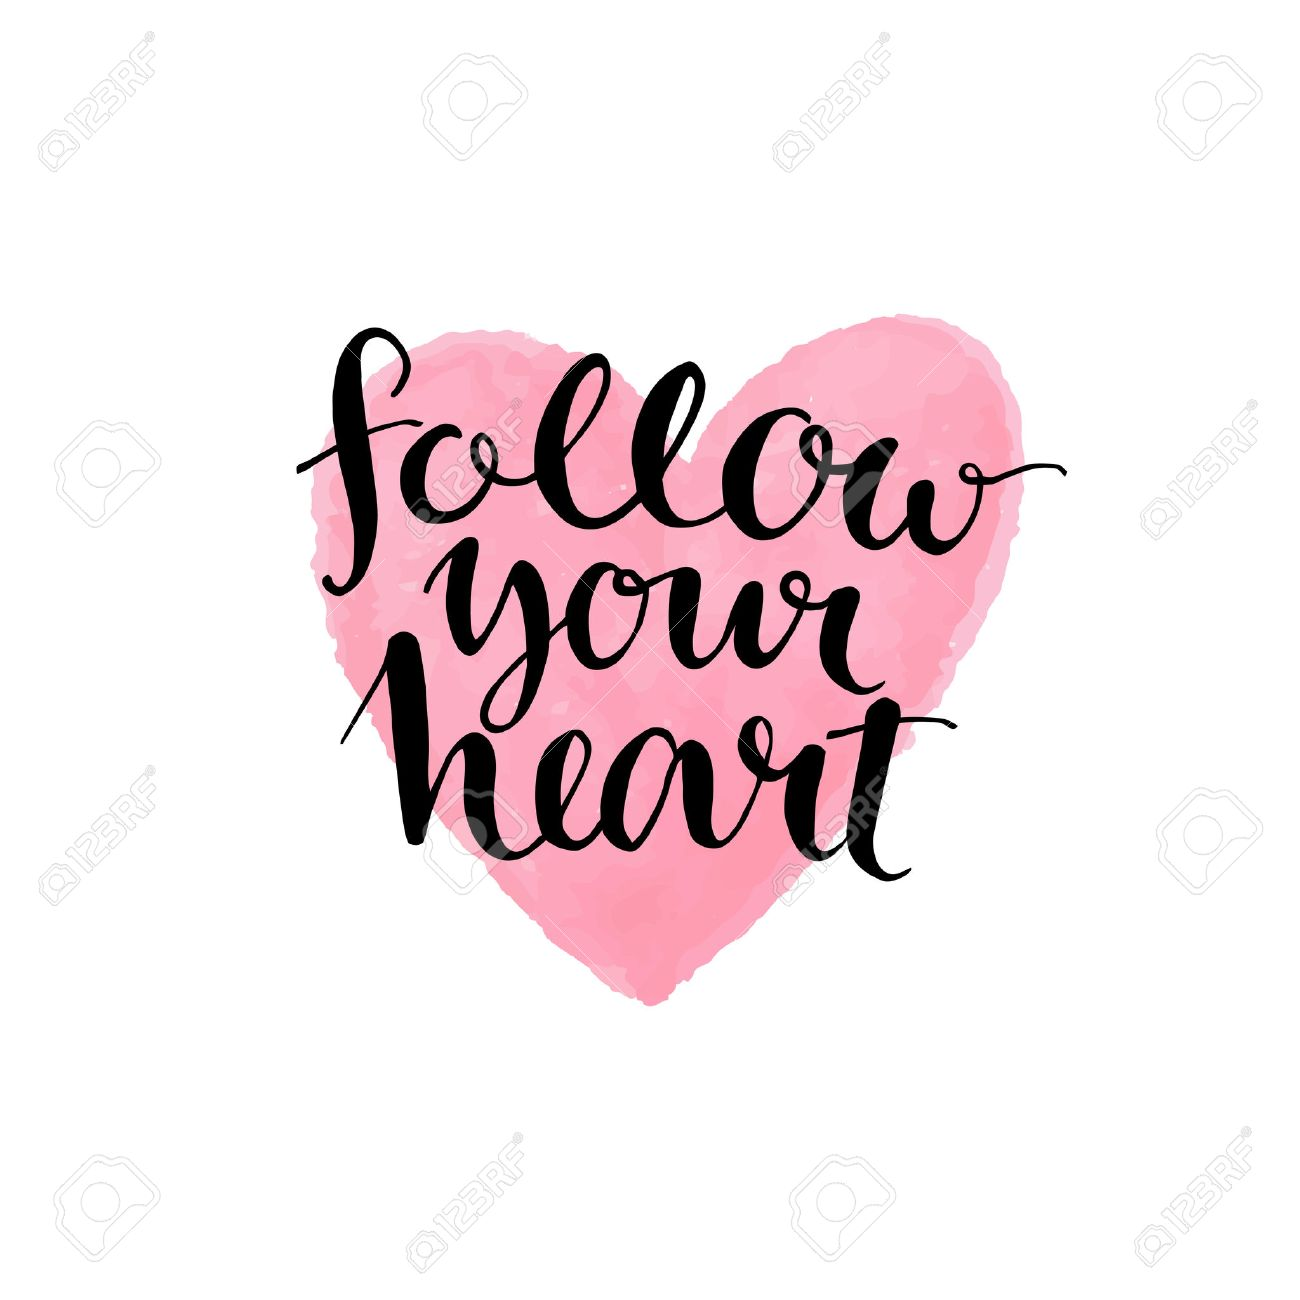 Follow Your Heart Brush Lettering Quote Follow Your Heart At Pink Watercolor Background